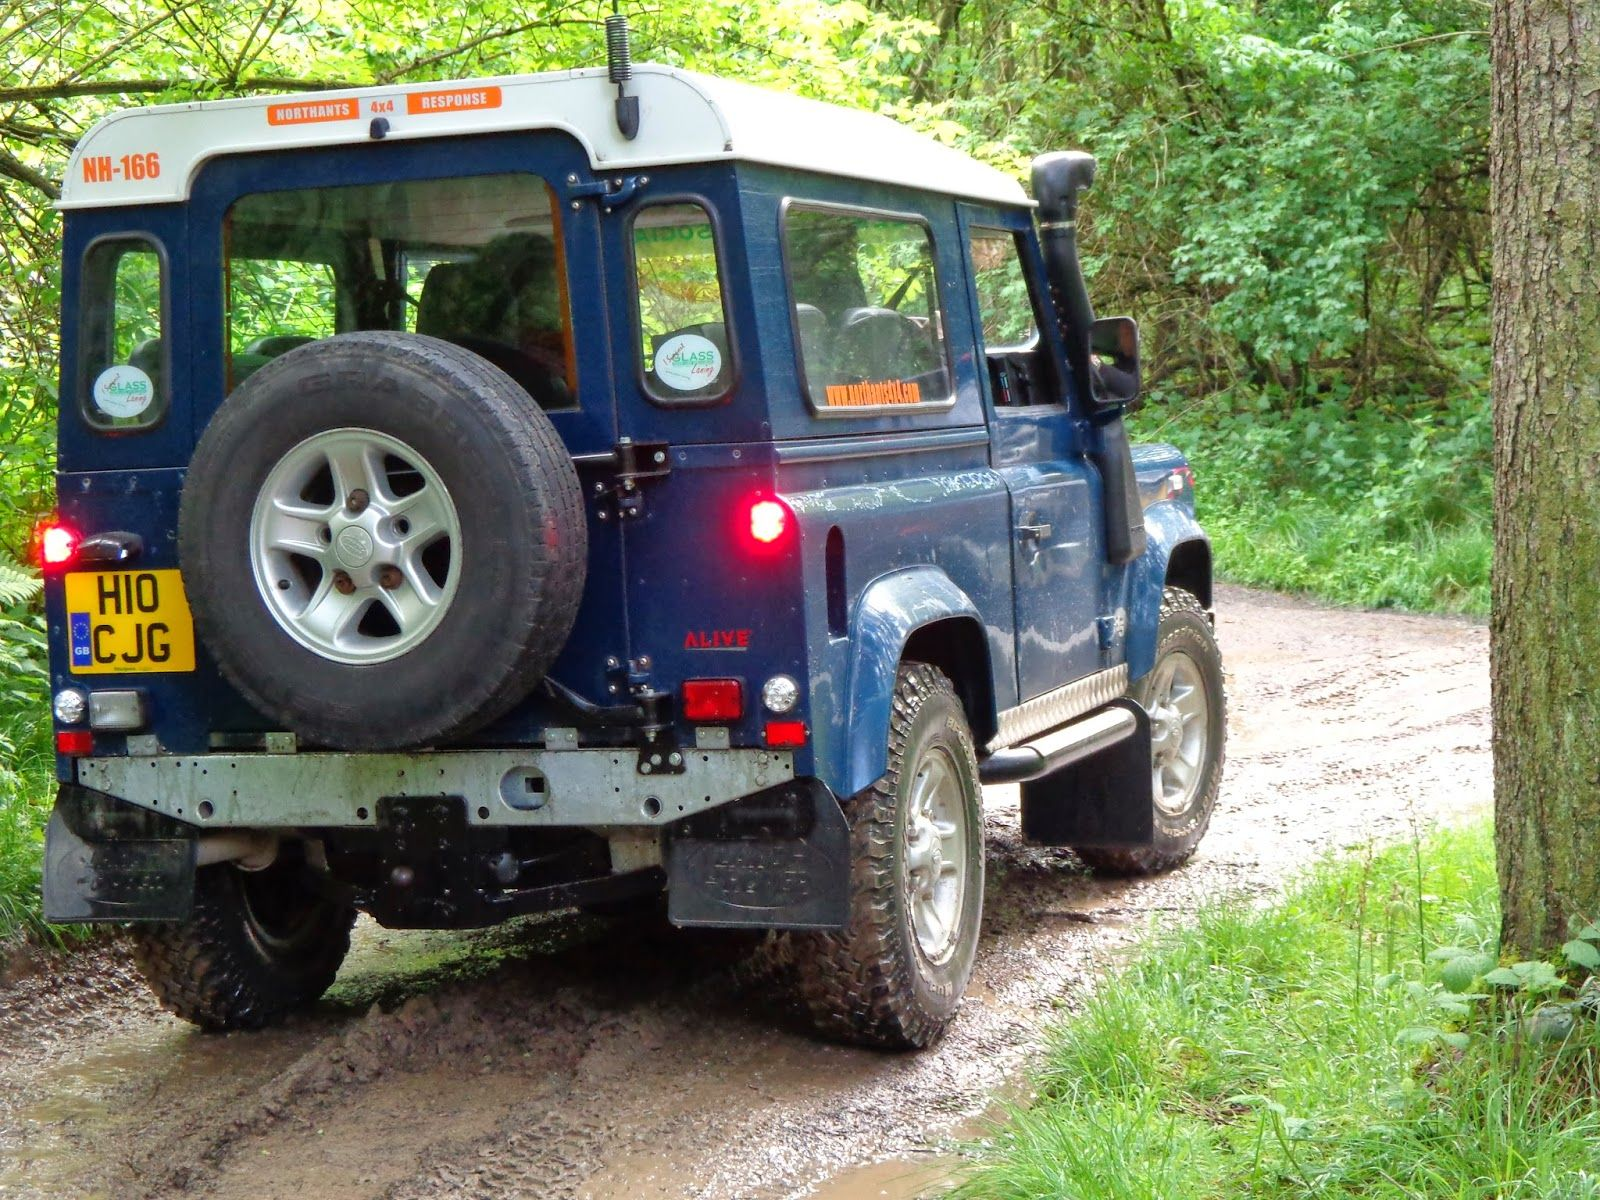 Diana'sHappyRoom: Eastnor Castle Land Rover Show Photos | Auto+Matic